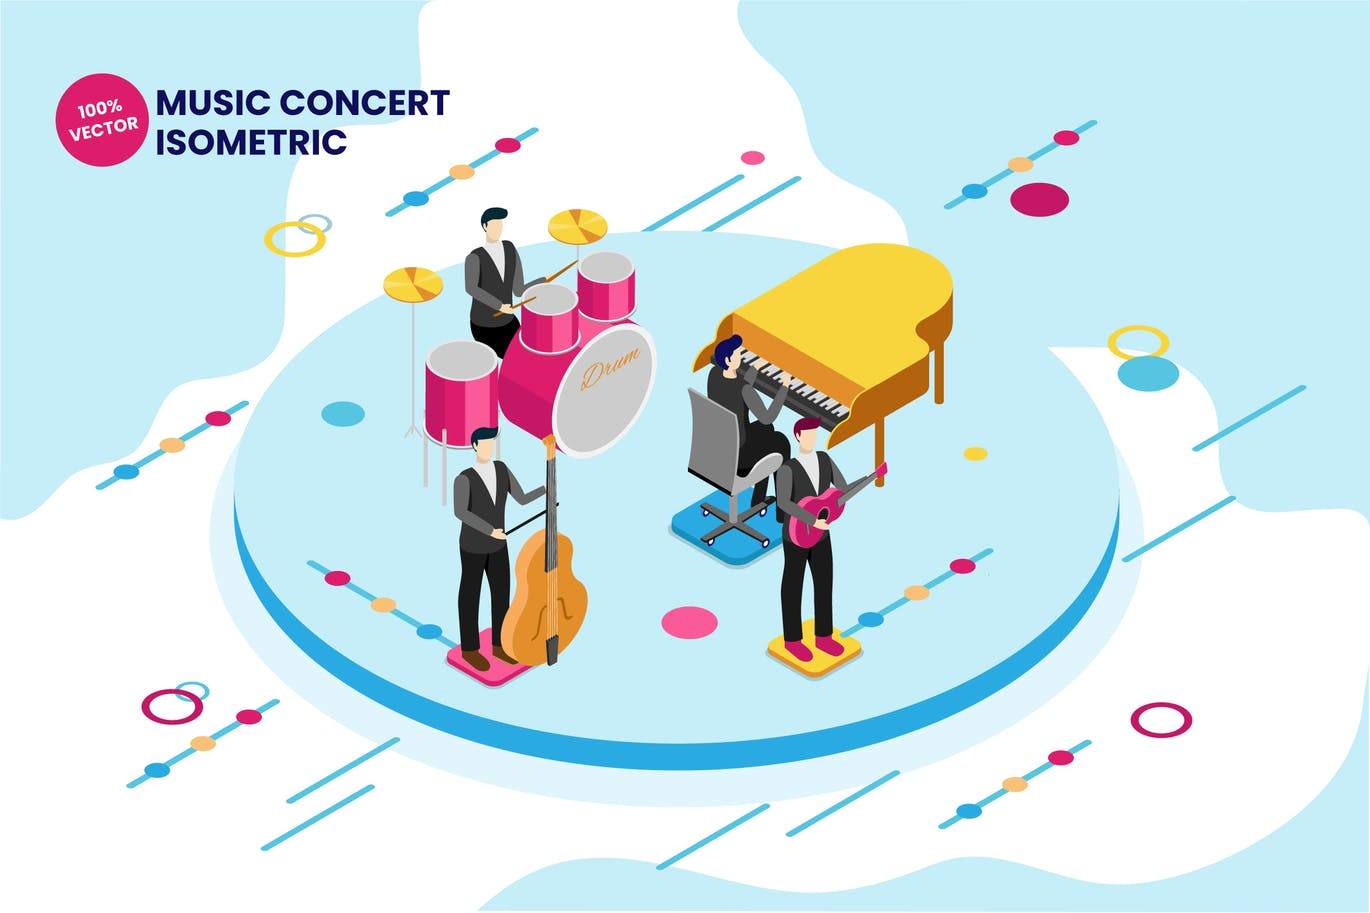 Isometric Music Concert Vector Illustration